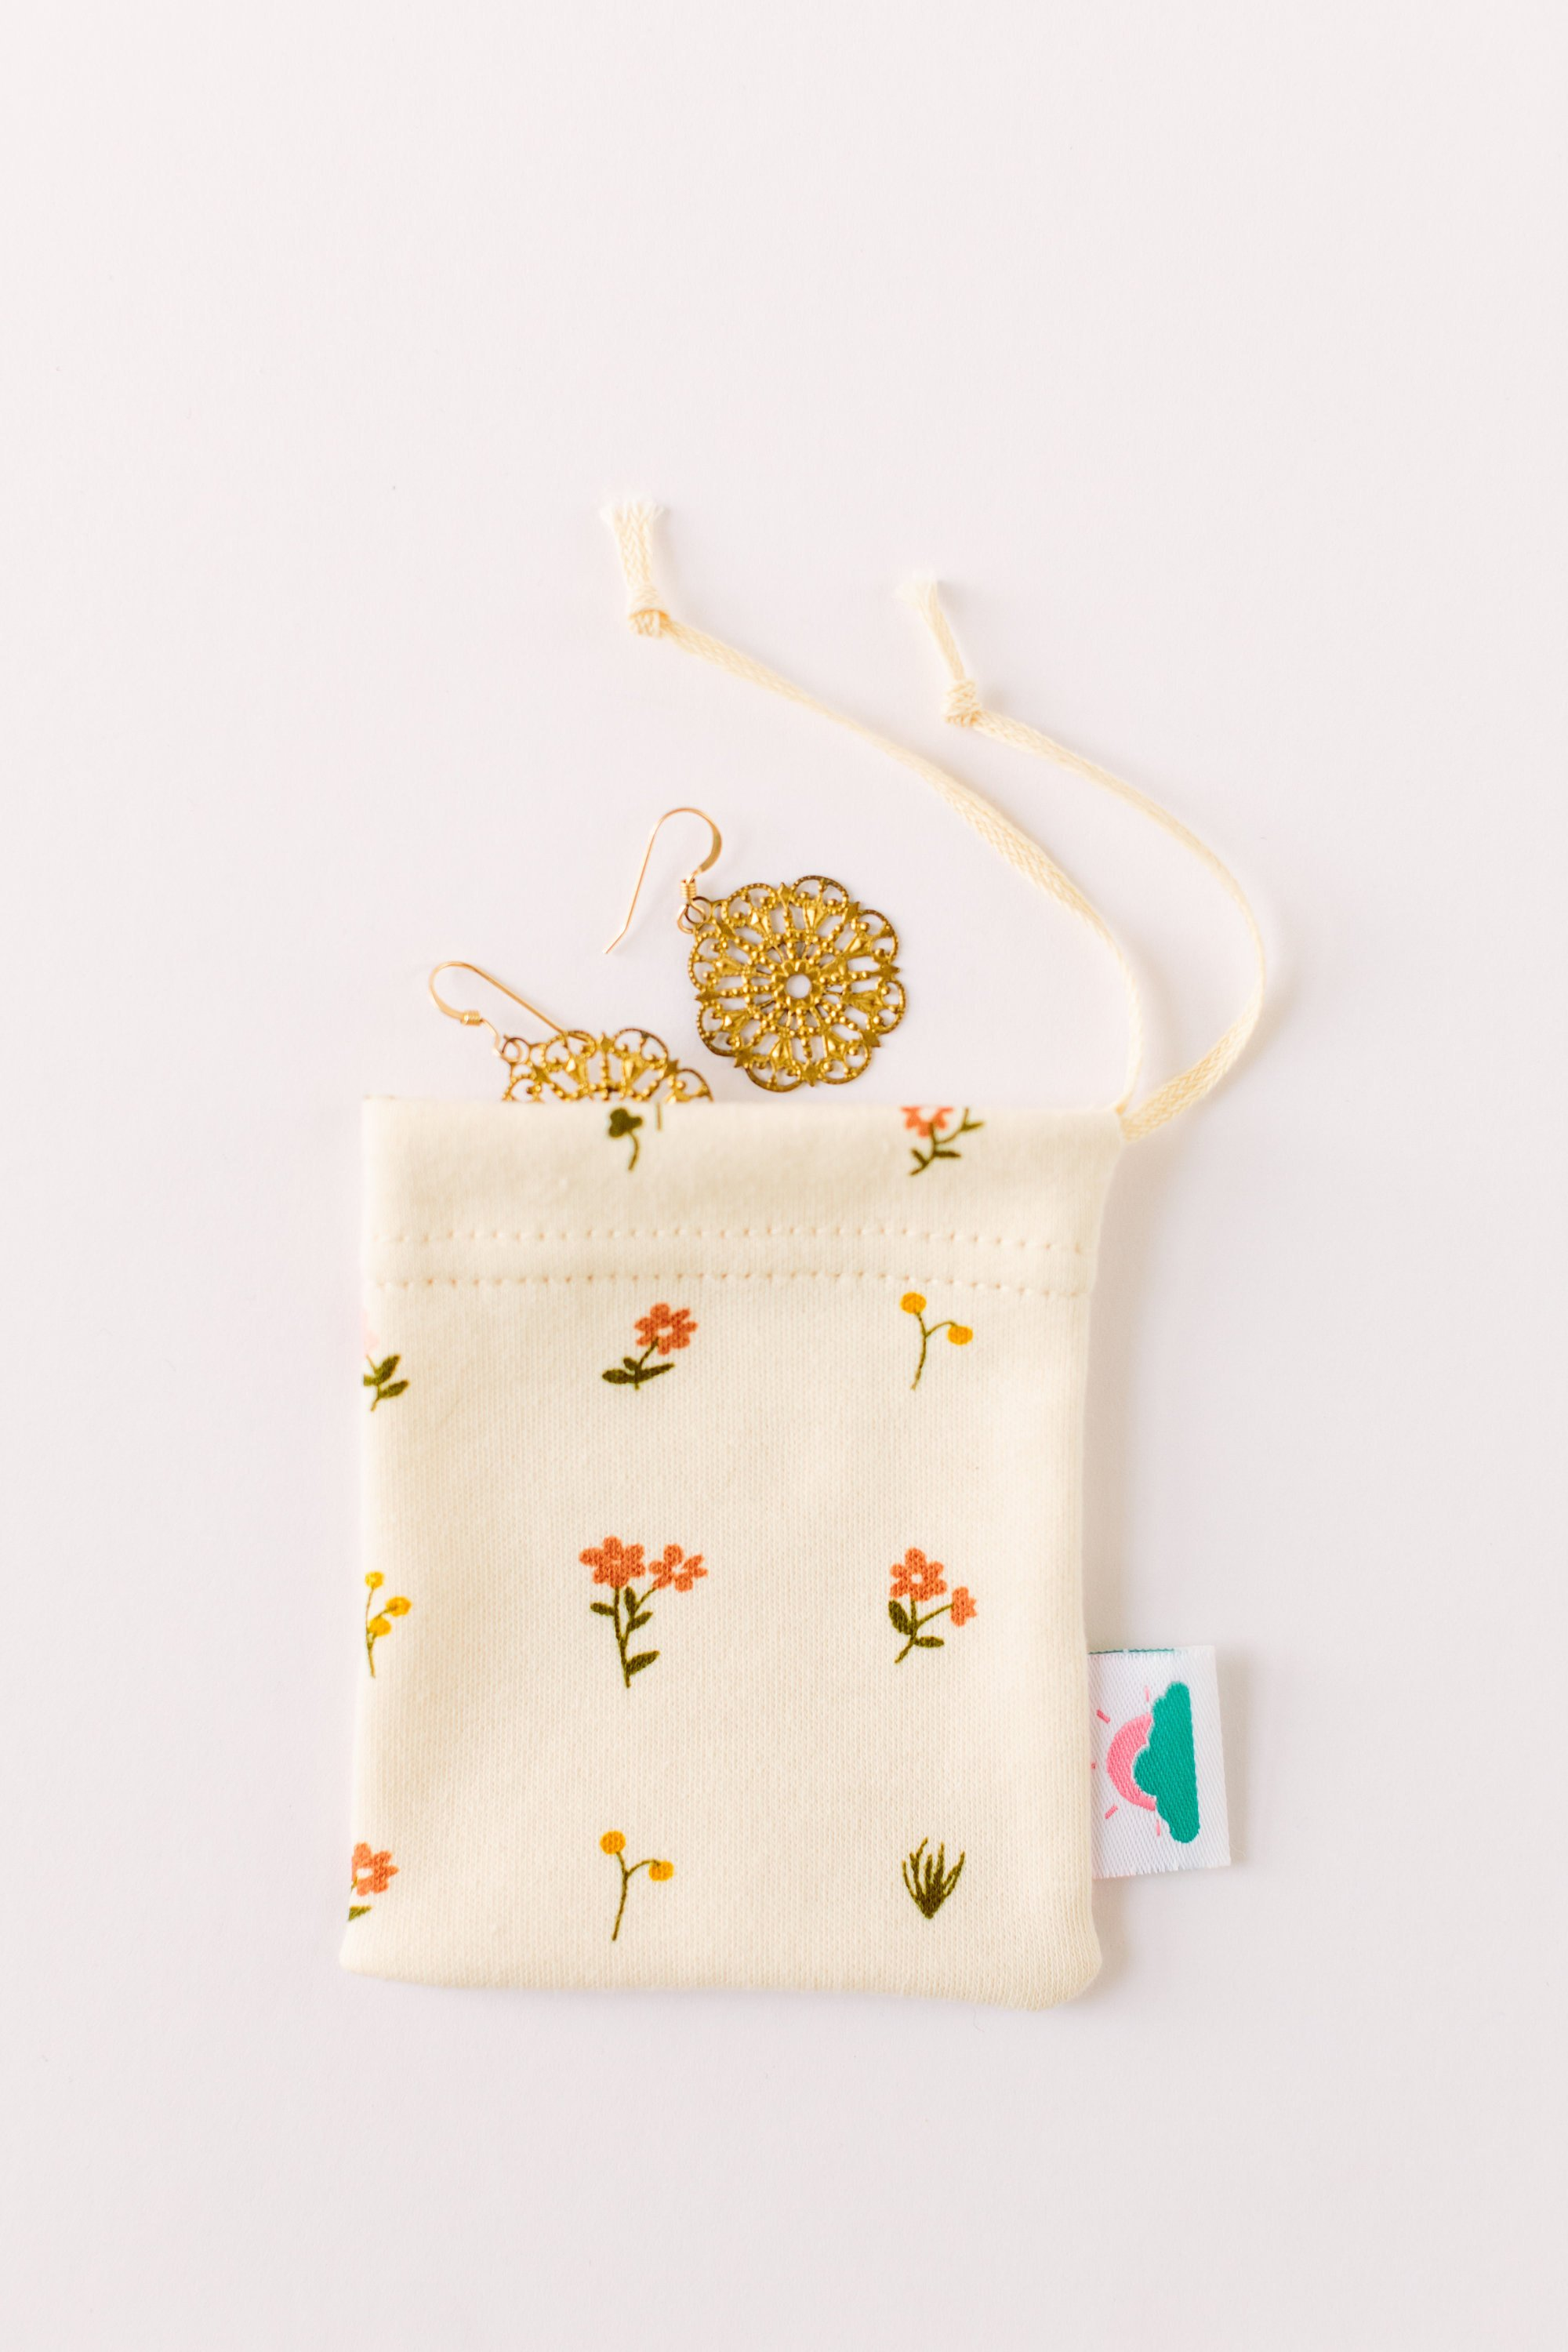 "Mini Drawstring Bag - Lakeshore Dry Goods | GOTS Certified Organic cotton | $4.50 with code ""STYLEFAIR"" for 15% offPerfect for jewelry, coins, pins, or traveling! These come in the cutest prints and are made from leftover scrap fabric."